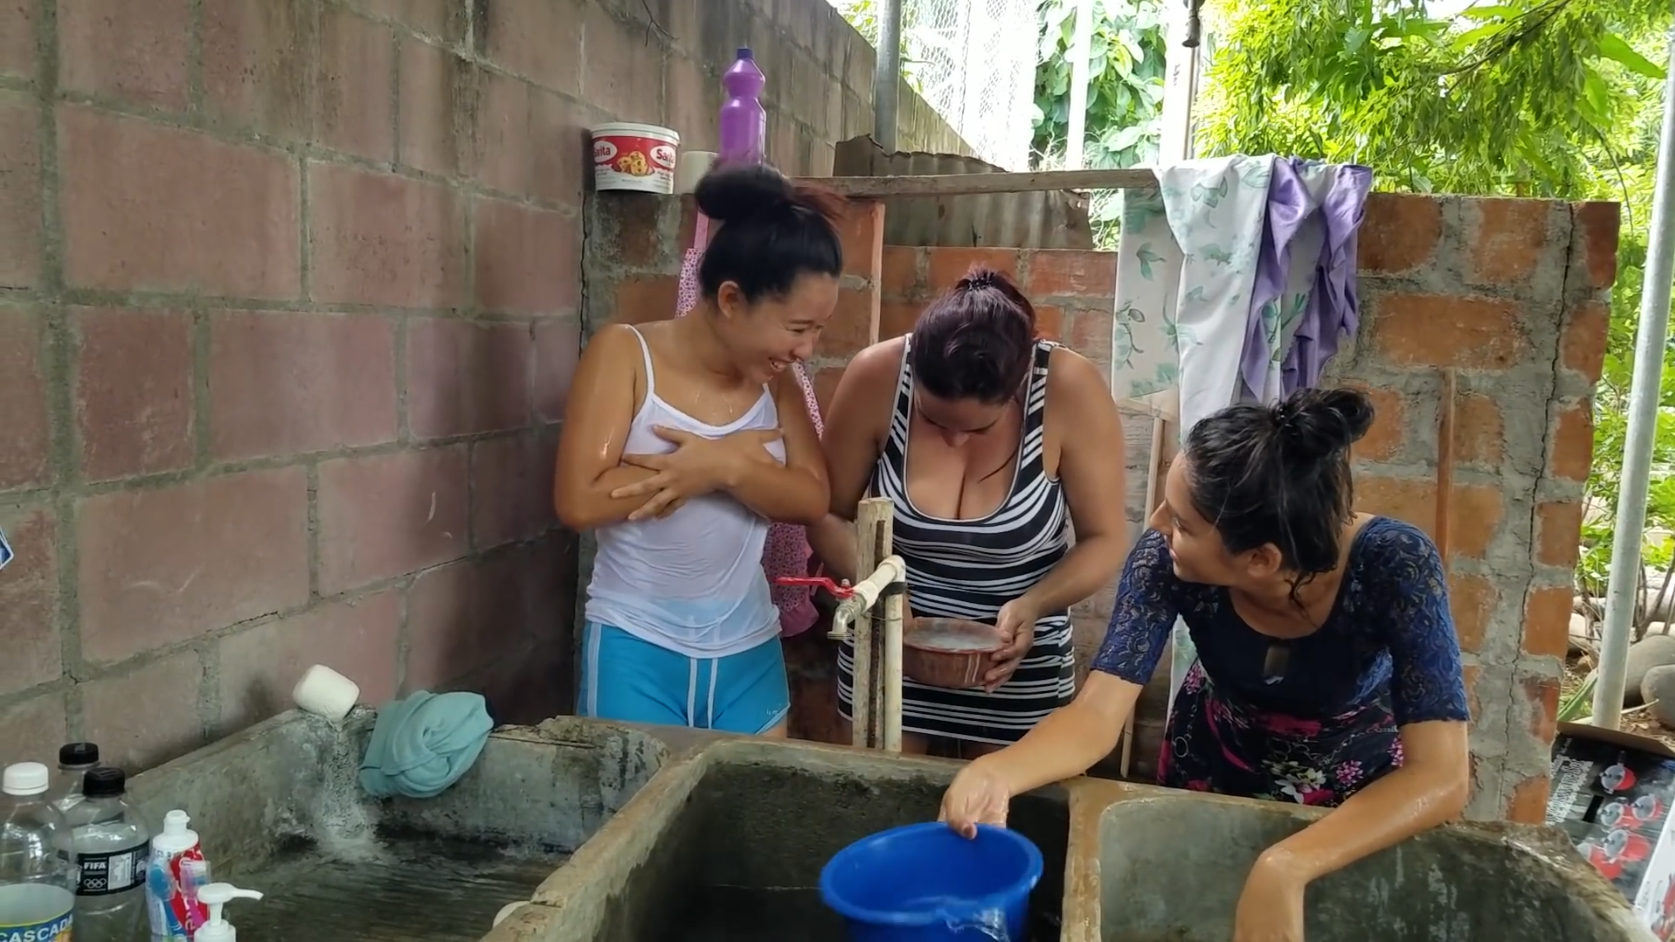 YouTube video: two women from El Salvador wetting (nudity)